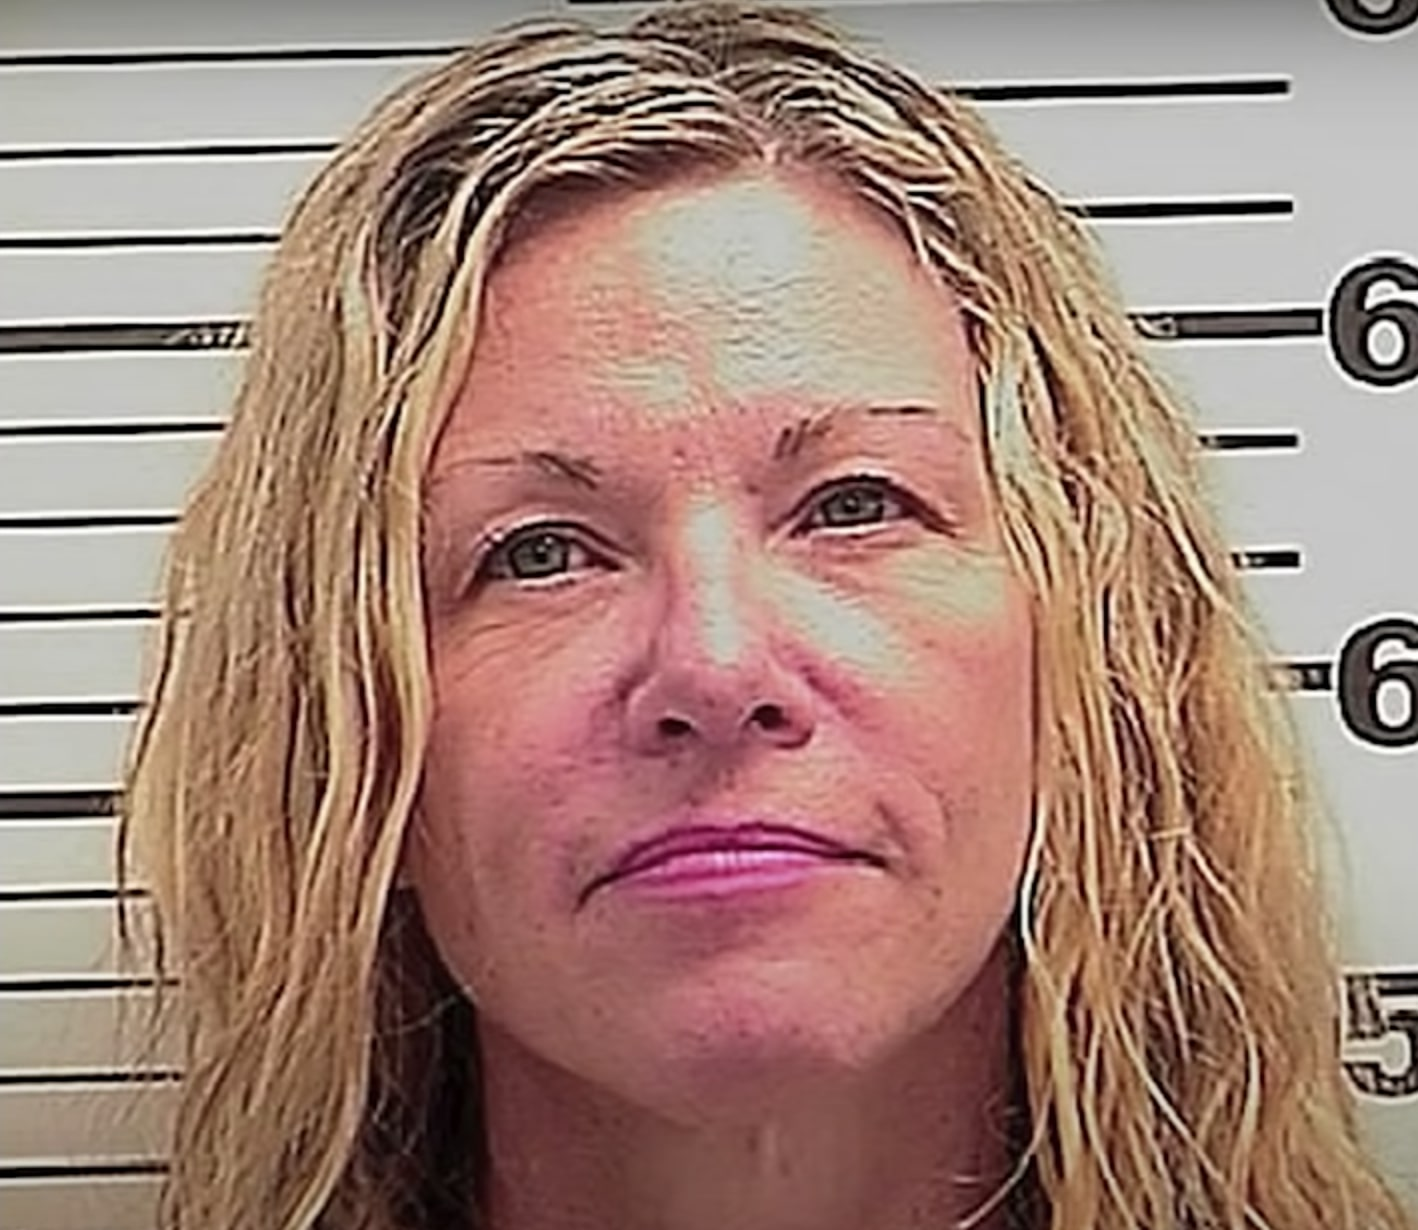 sister-in-law says lori vallow 'went over the edge'